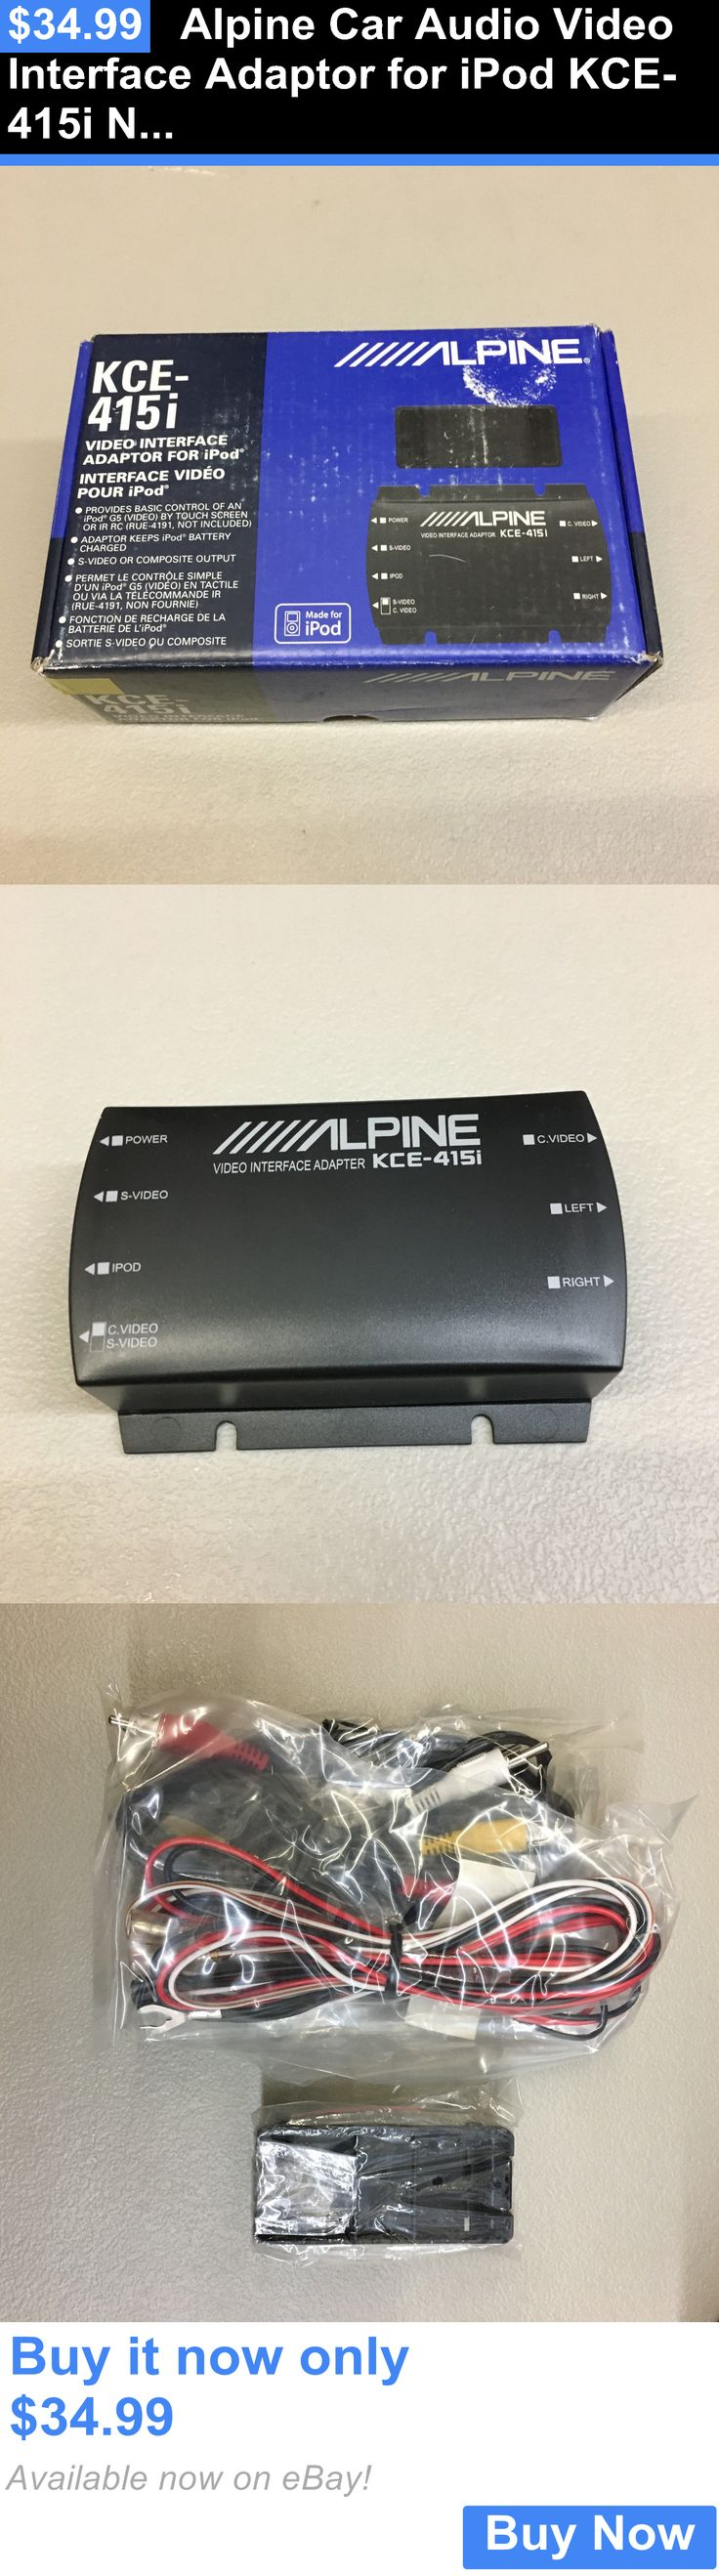 Cables and Adapters: Alpine Car Audio Video Interface Adaptor For Ipod Kce-415I Nos BUY IT NOW ONLY: $34.99